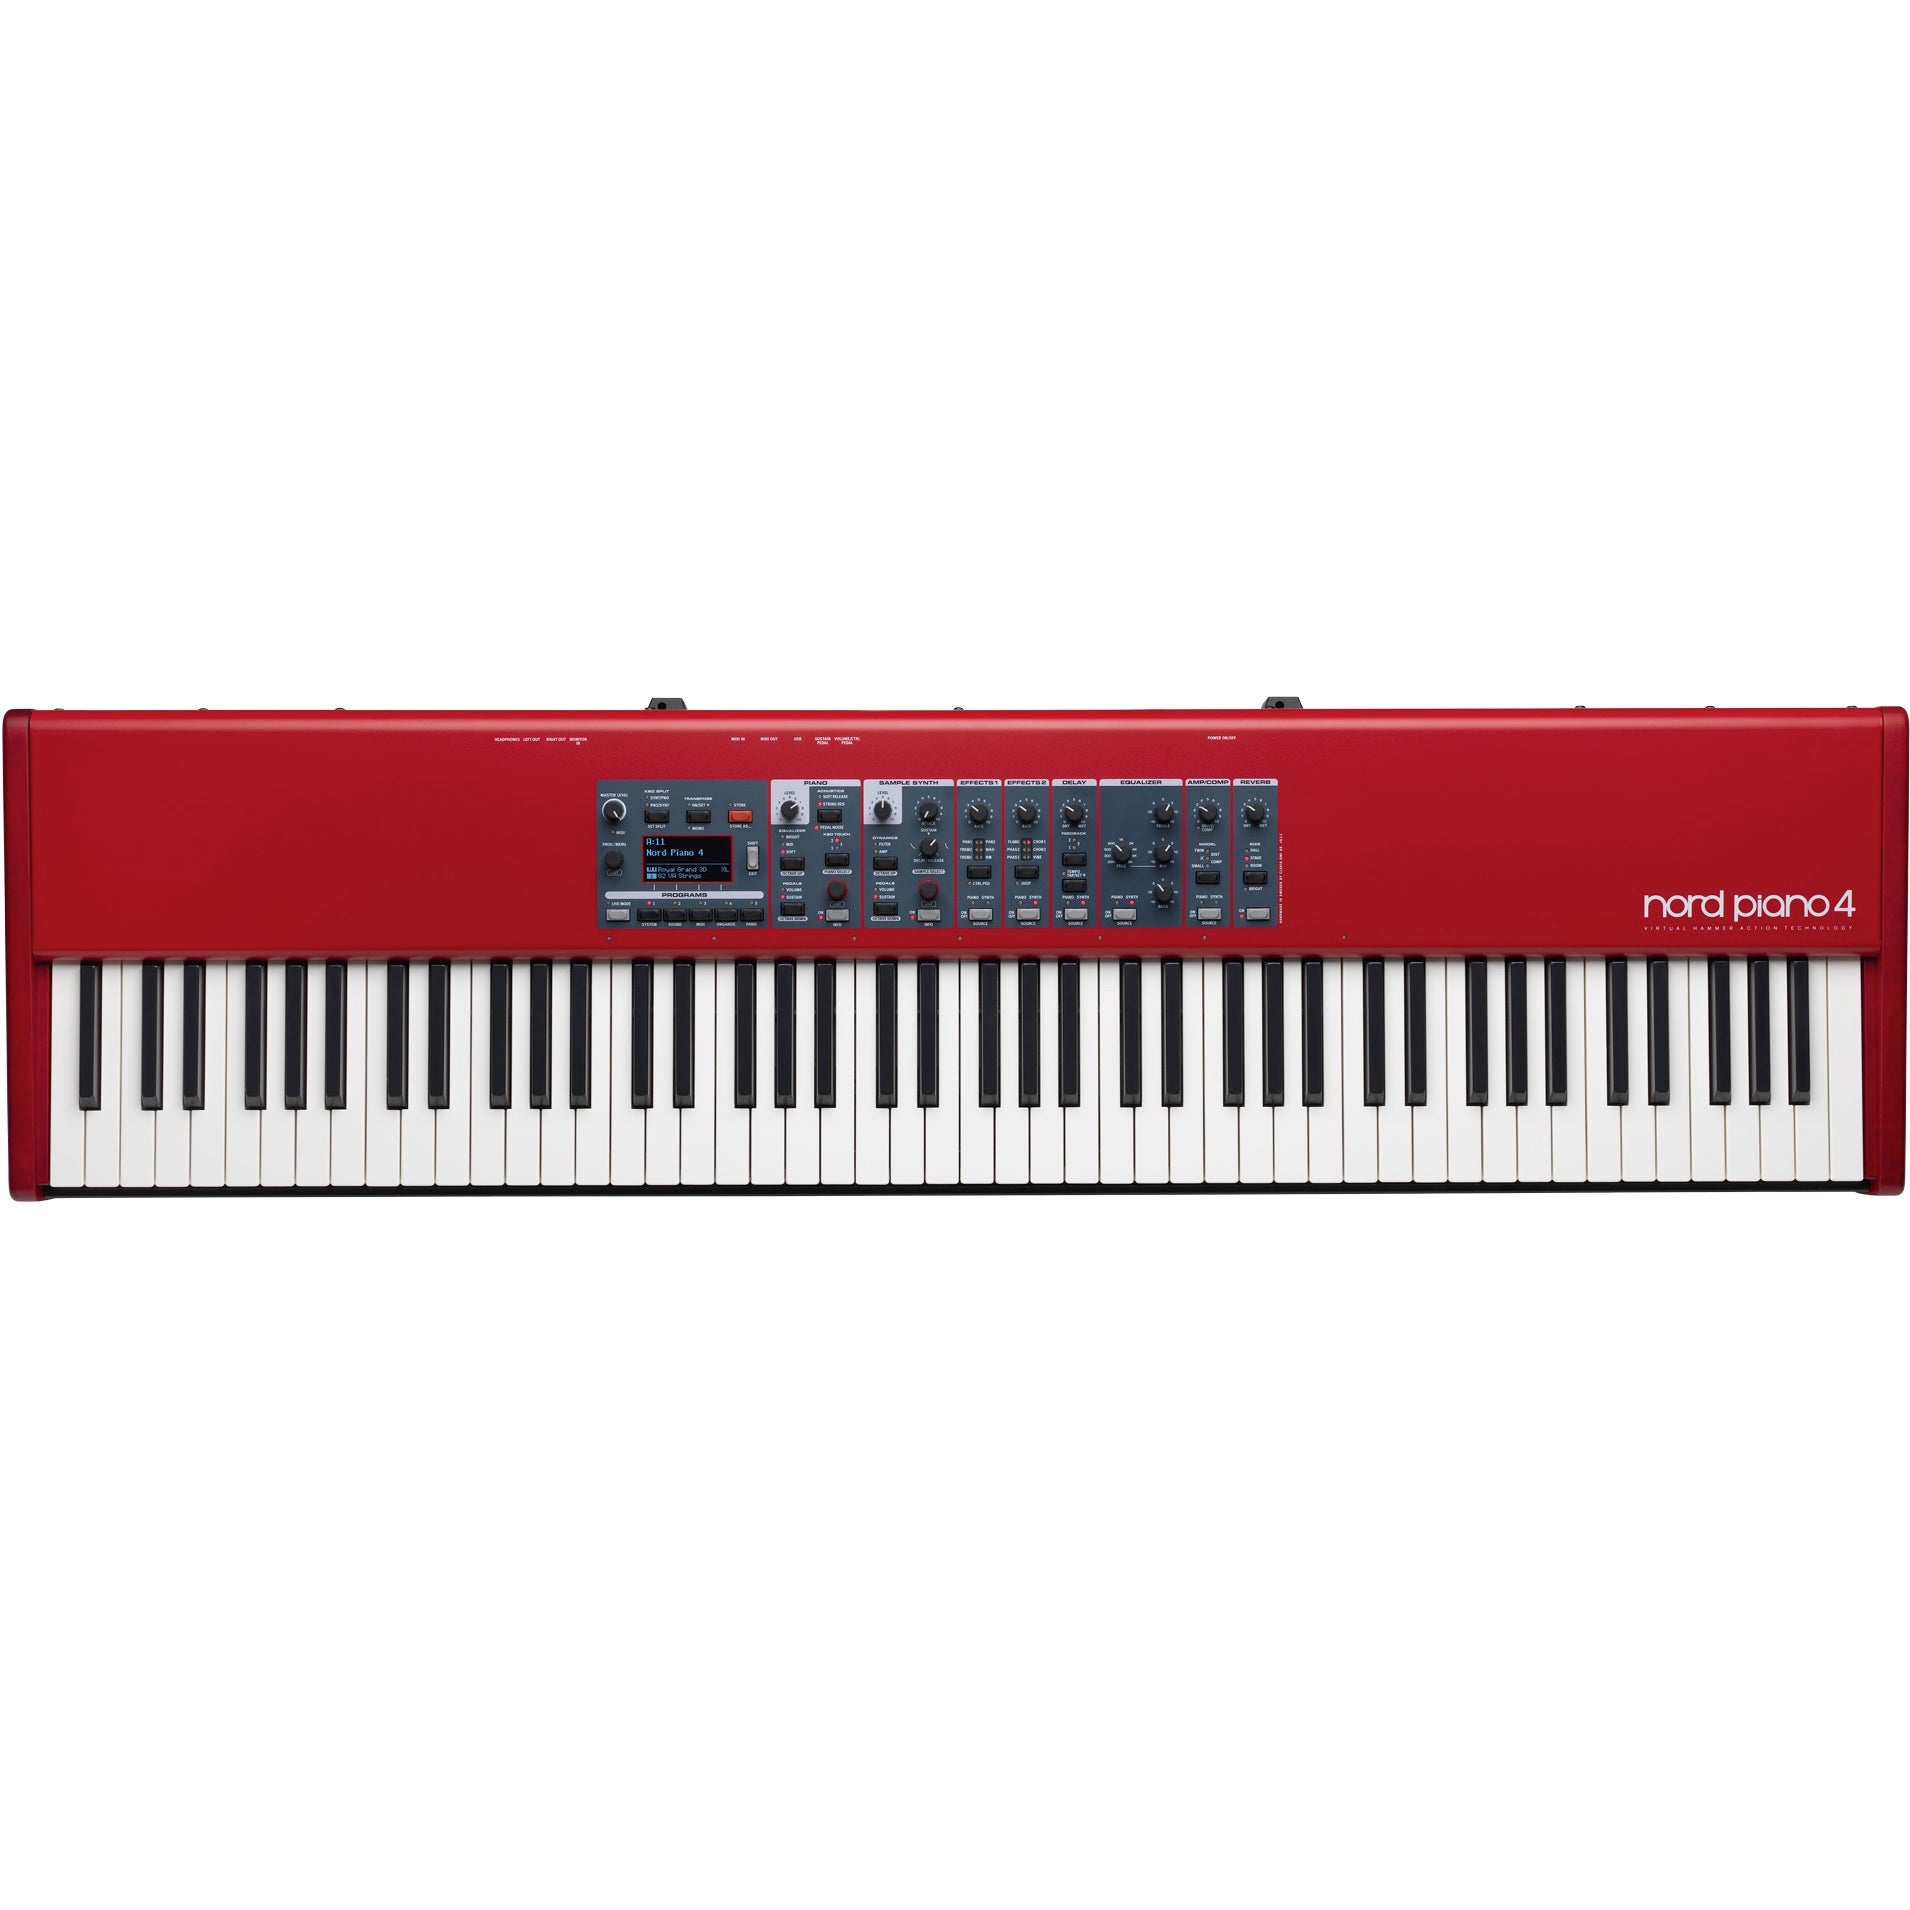 Nord Piano 4 88-Note Weighted Hammer Action Keybed Digital Stage Piano | Music Experience | Shop Online | South Africa